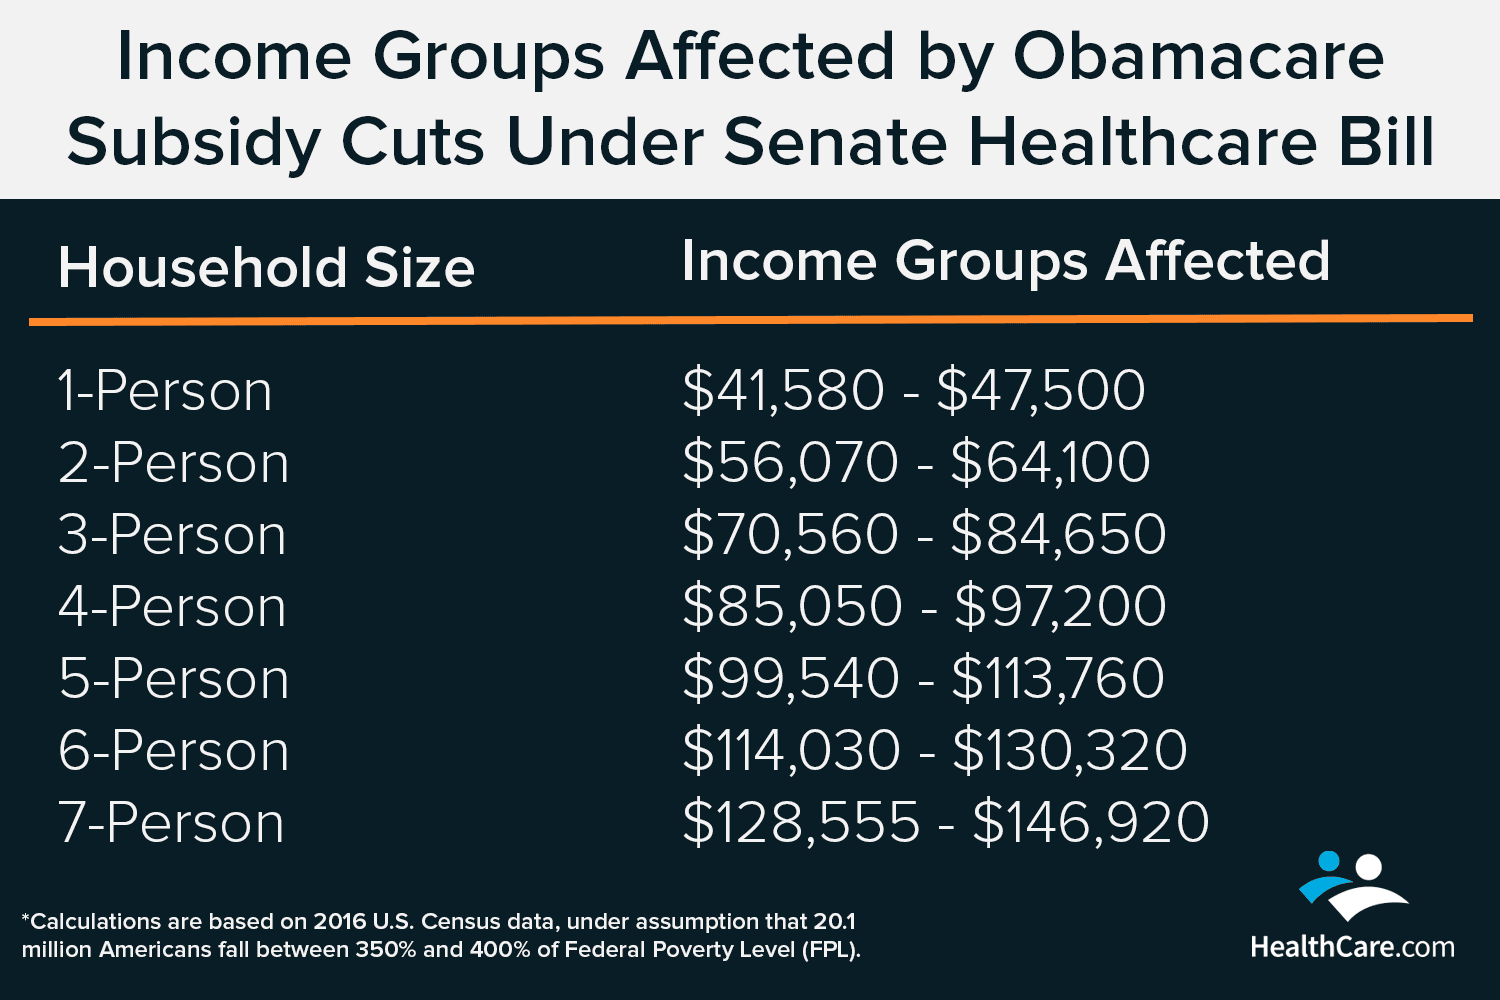 Income Groups Affected by Obamacare Subsidy Cuts Under Senate Healthcare Bill | The CheckUp by HealthCare.com